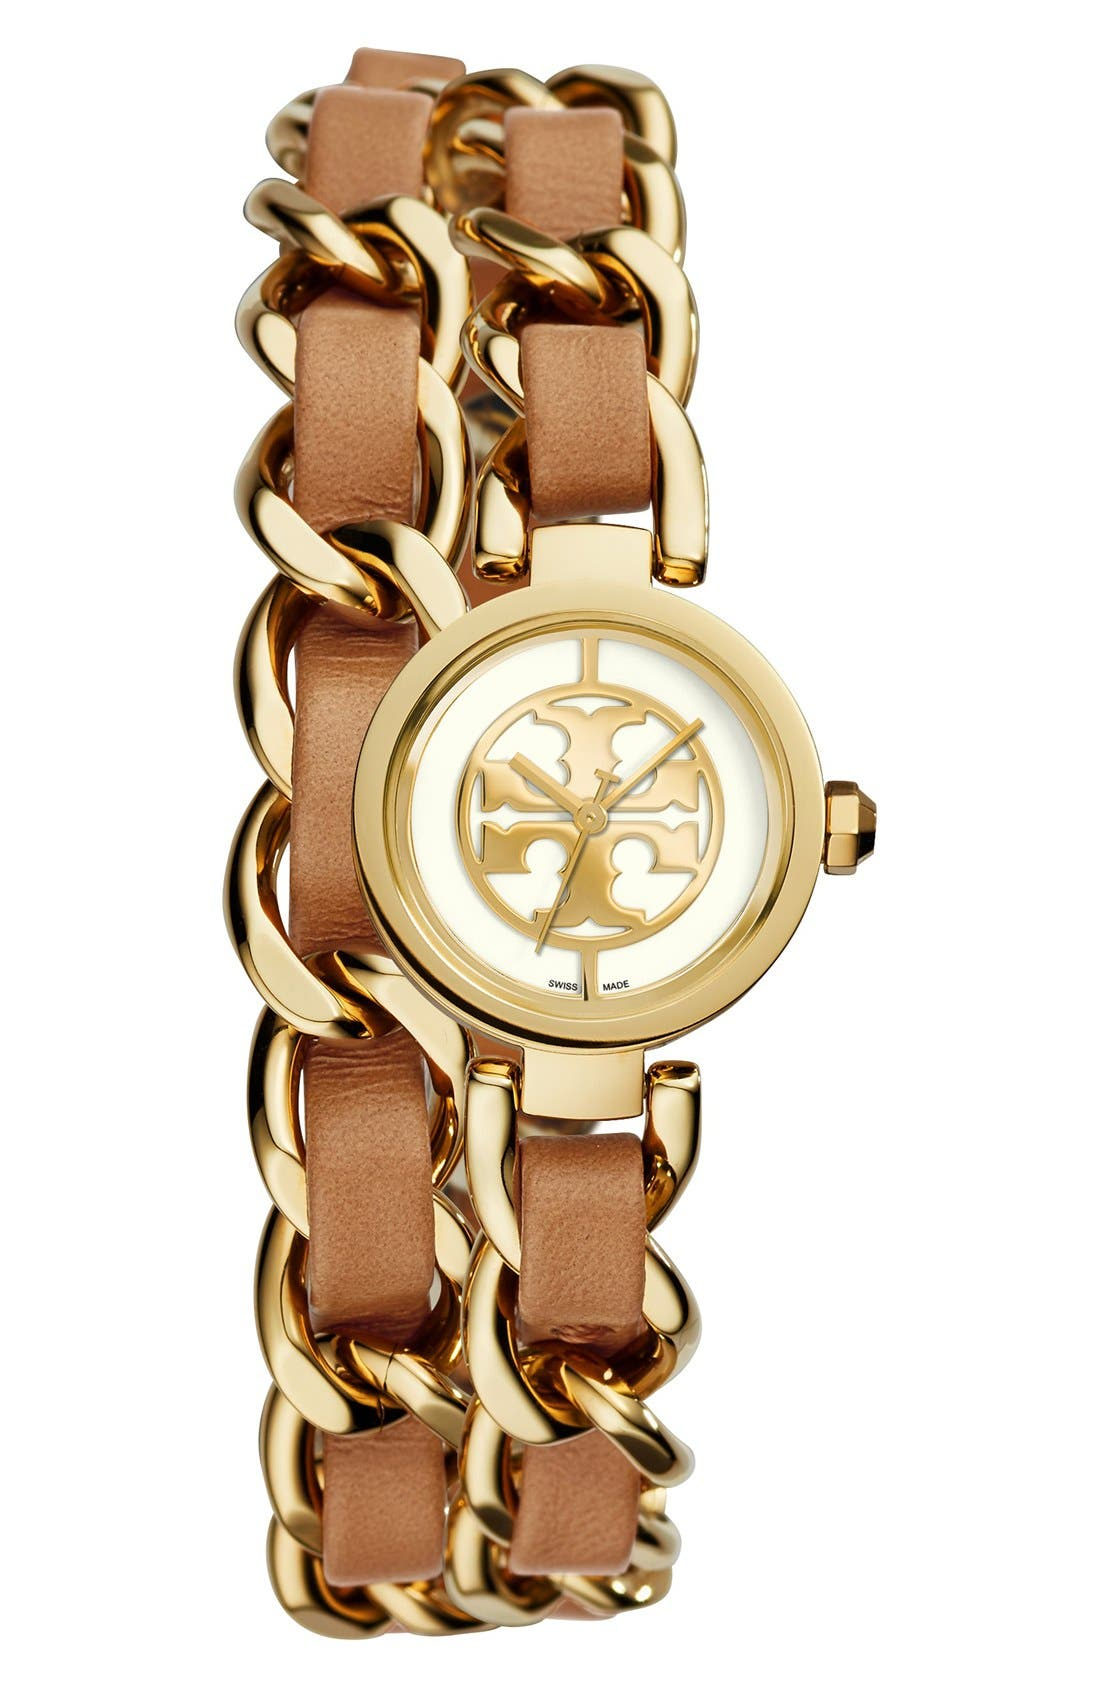 Alternate Image 1 Selected - Tory Burch 'Mini Reva' Double Wrap Chain Watch, 20mm